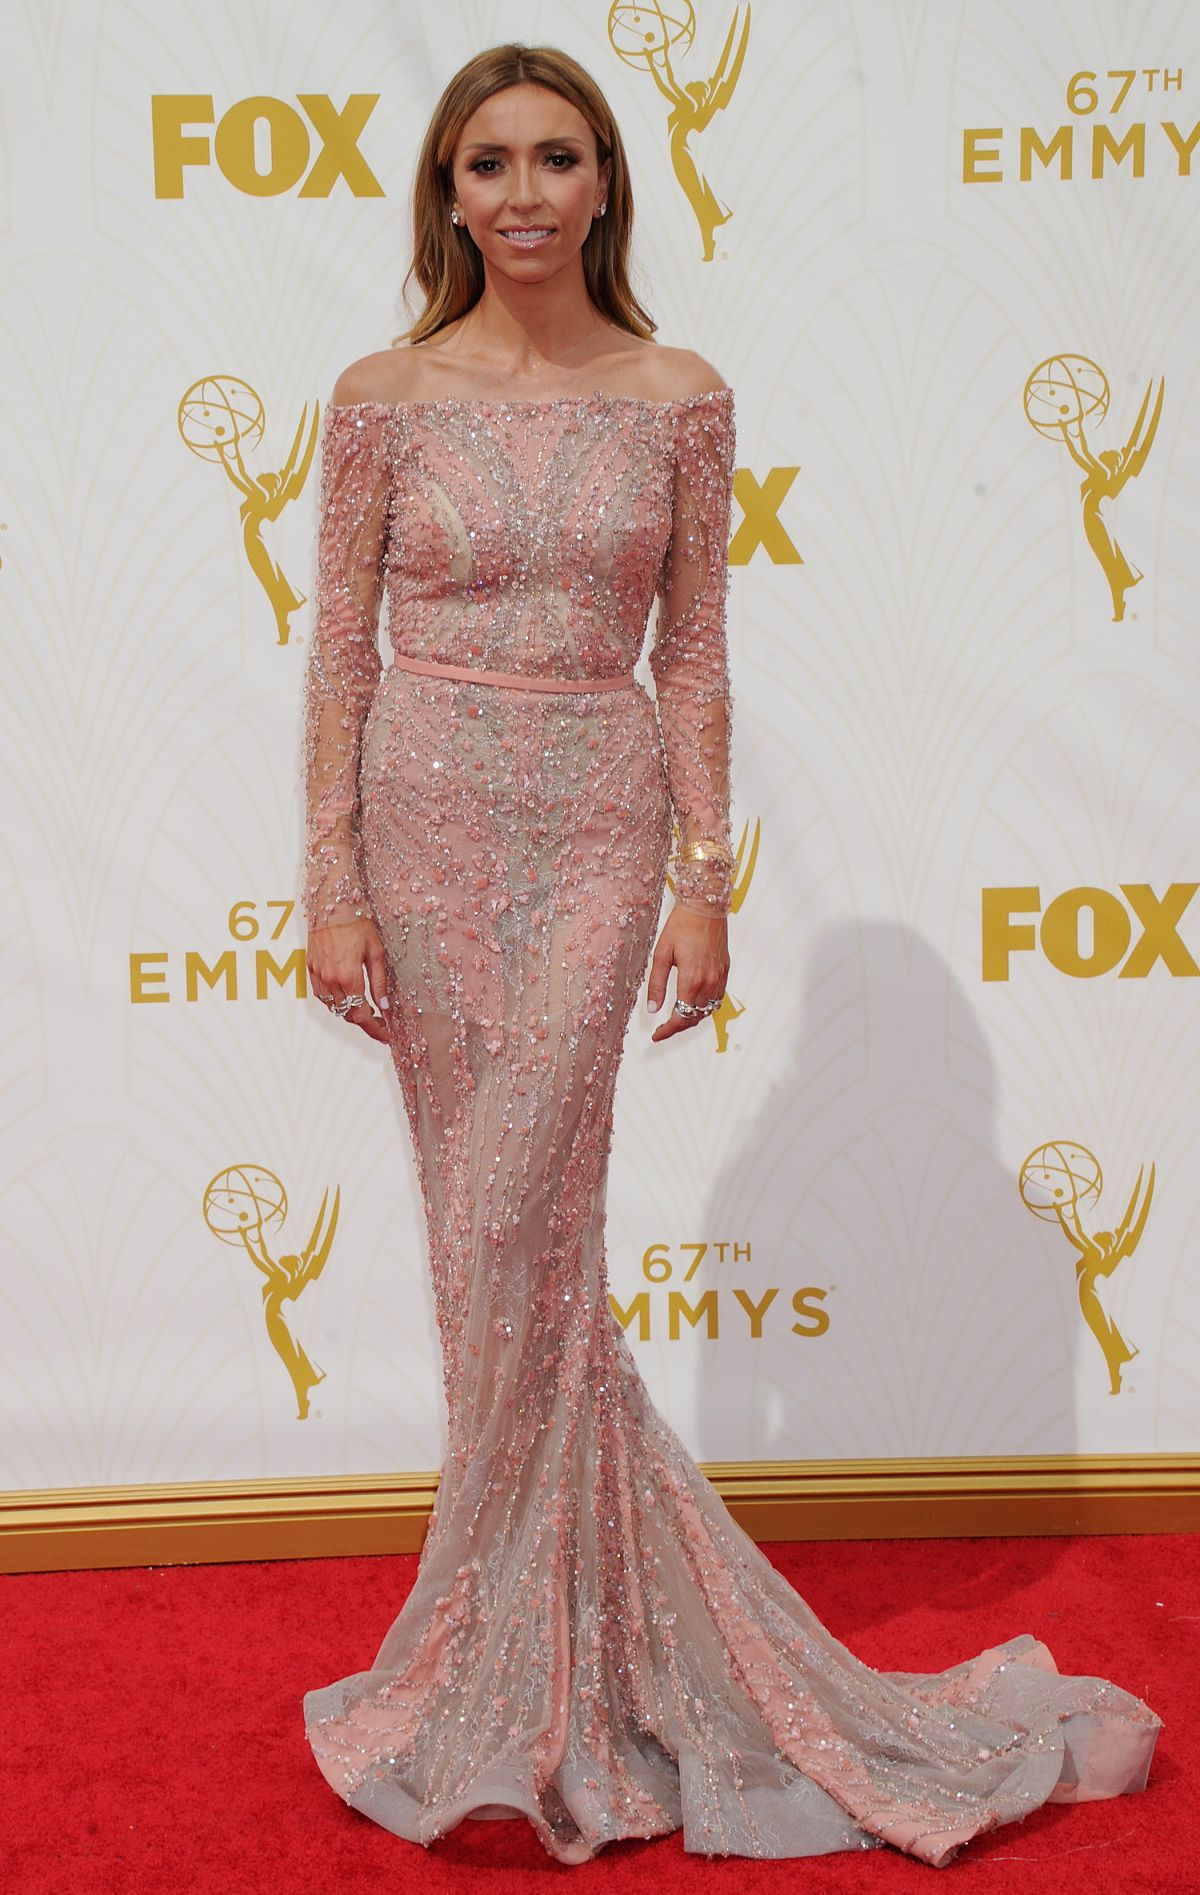 GIULIANA RANCIC at 2015 Emmy Awards in Los Angeles 09/20/2015